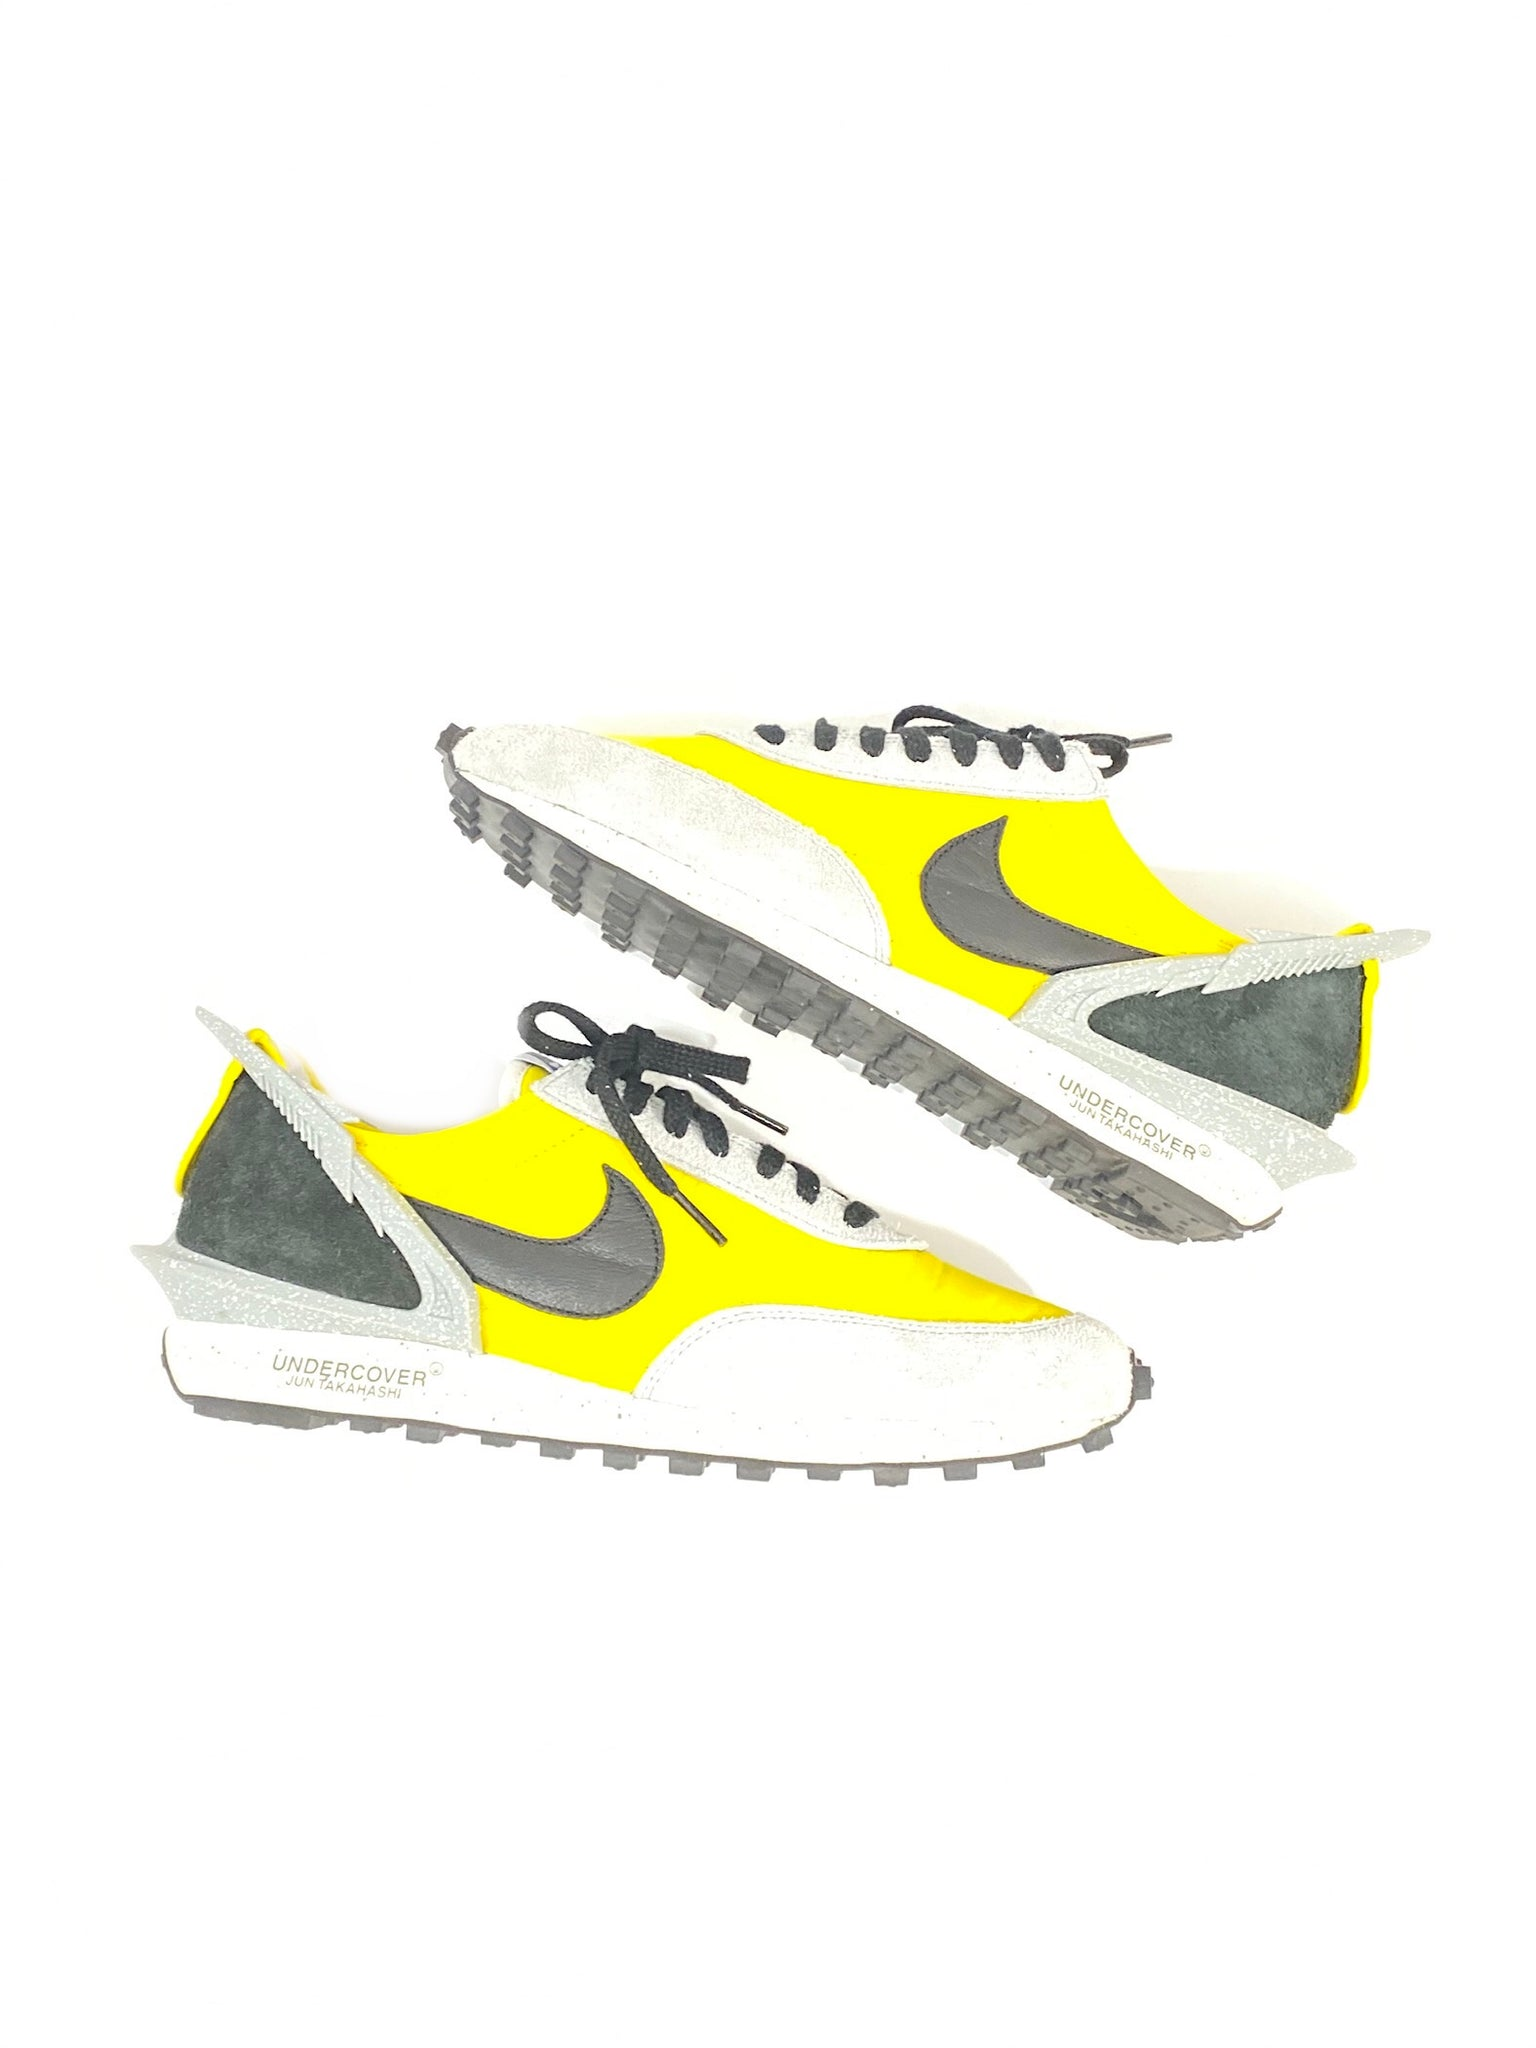 Undercover x Nike Daybreak  Yellow Color way